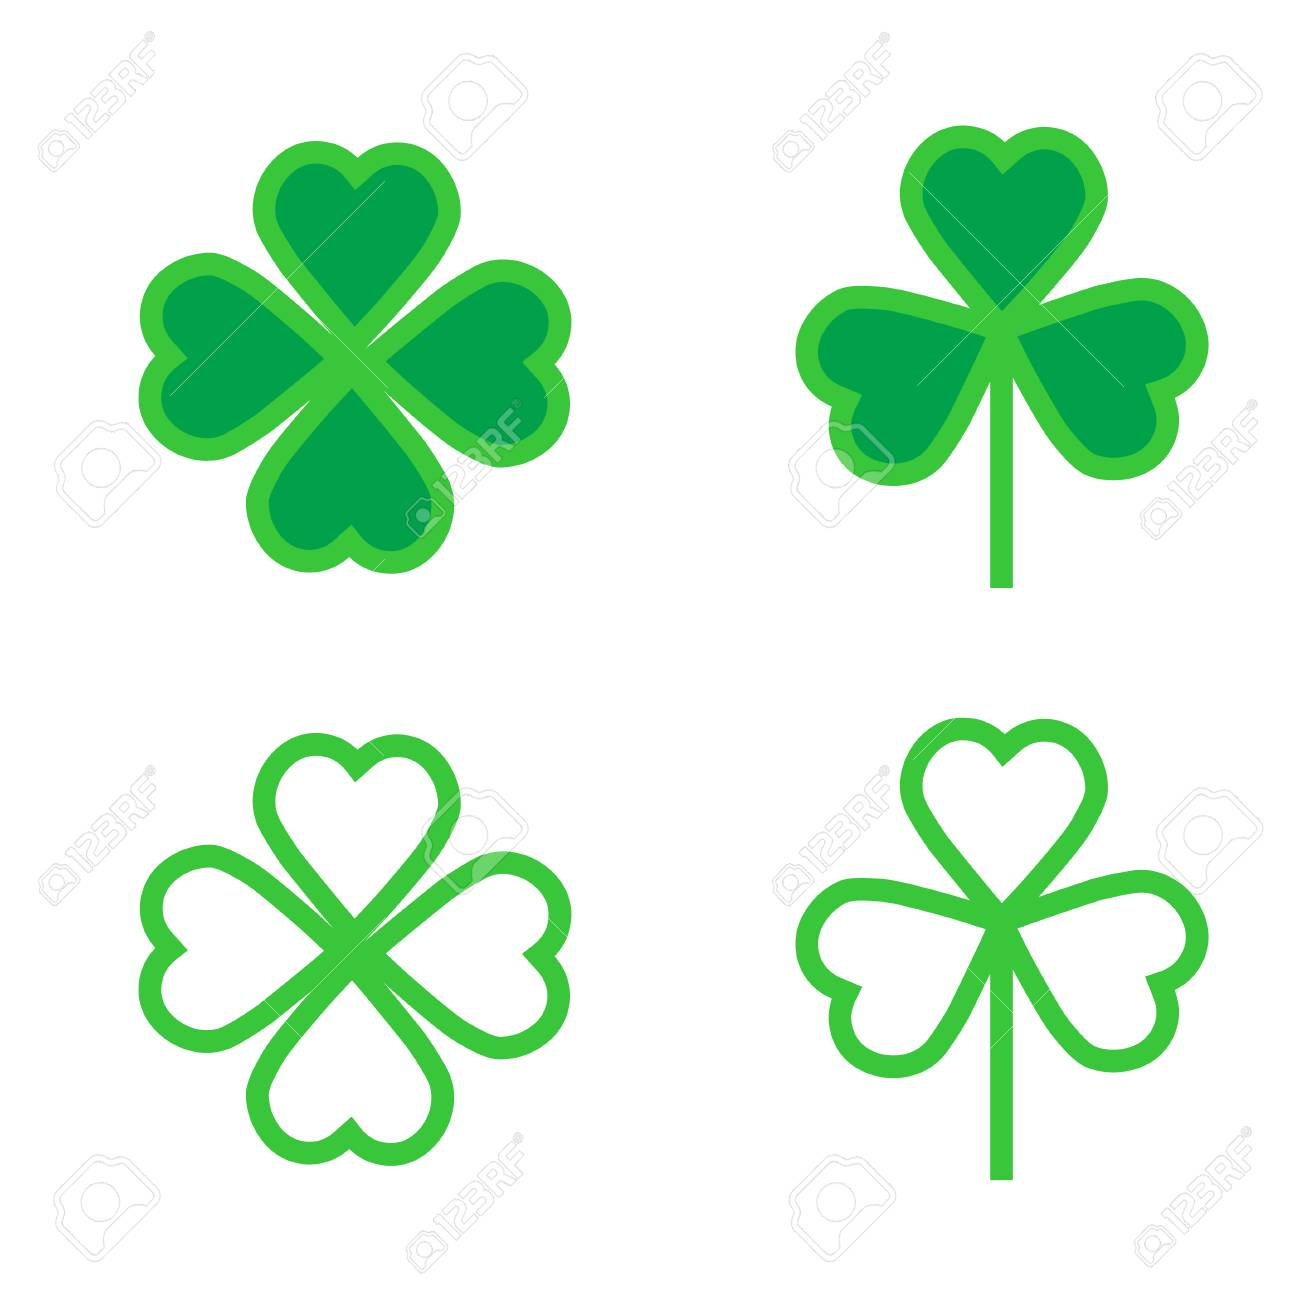 shamrock or clover icon for web and mobile modern minimalistic flat design stock vector